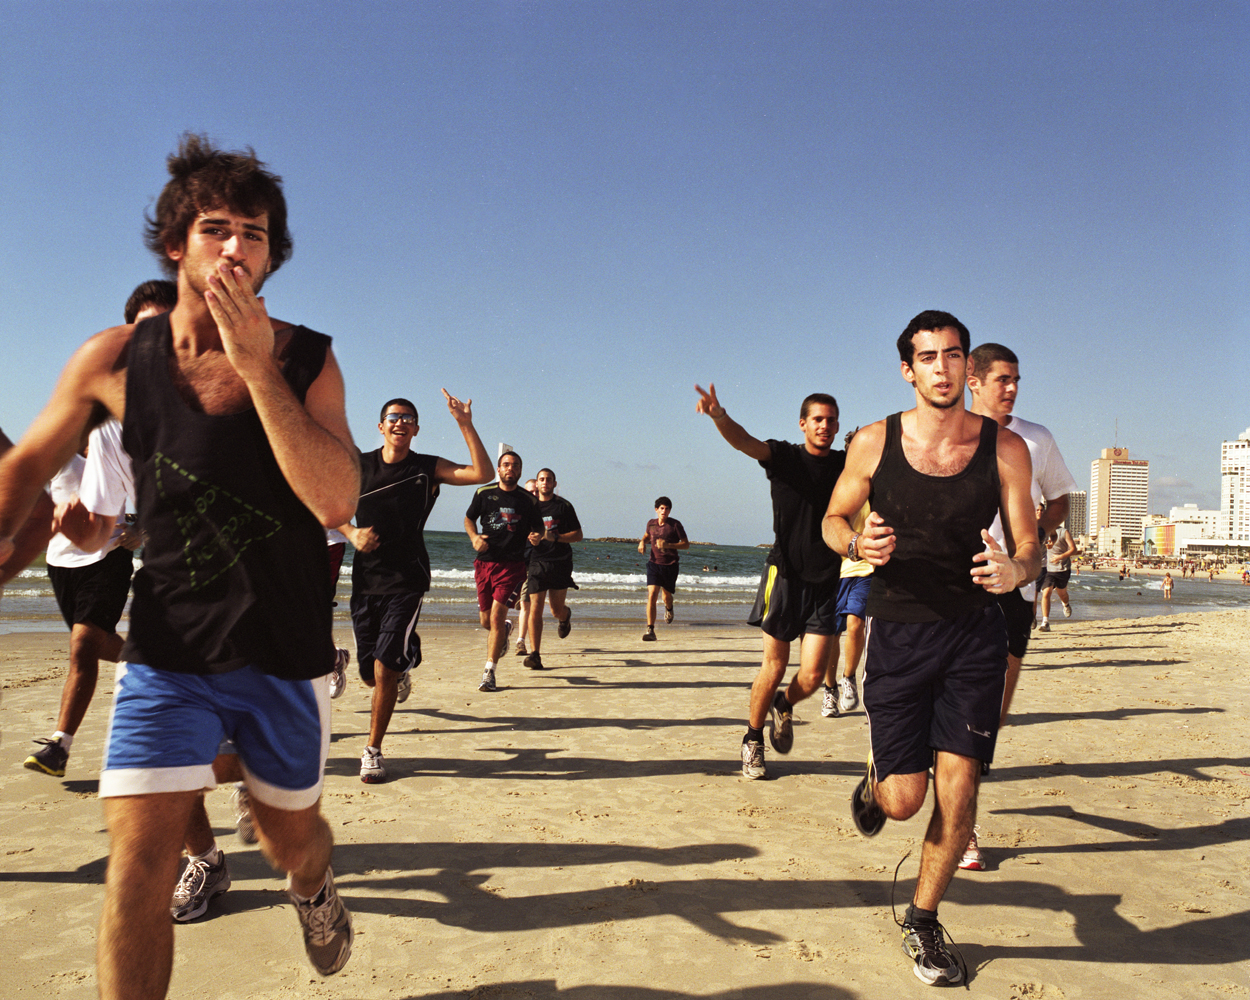 Israeli teenage boys get in shape as part their pre-military training.